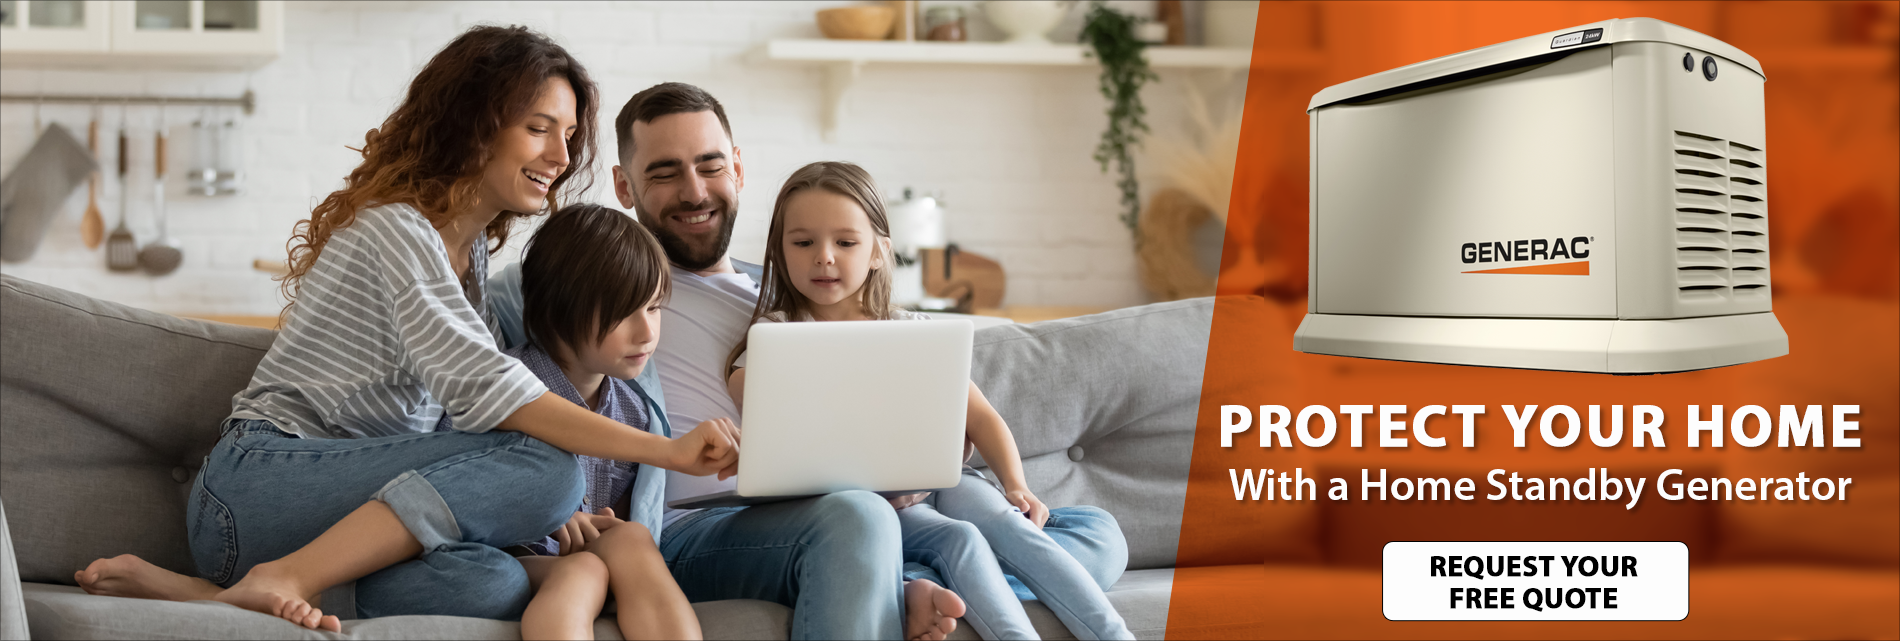 Free 7-Year Warranty with Purchase of Generac Home Standby Generator - Terms and Conditions Apply